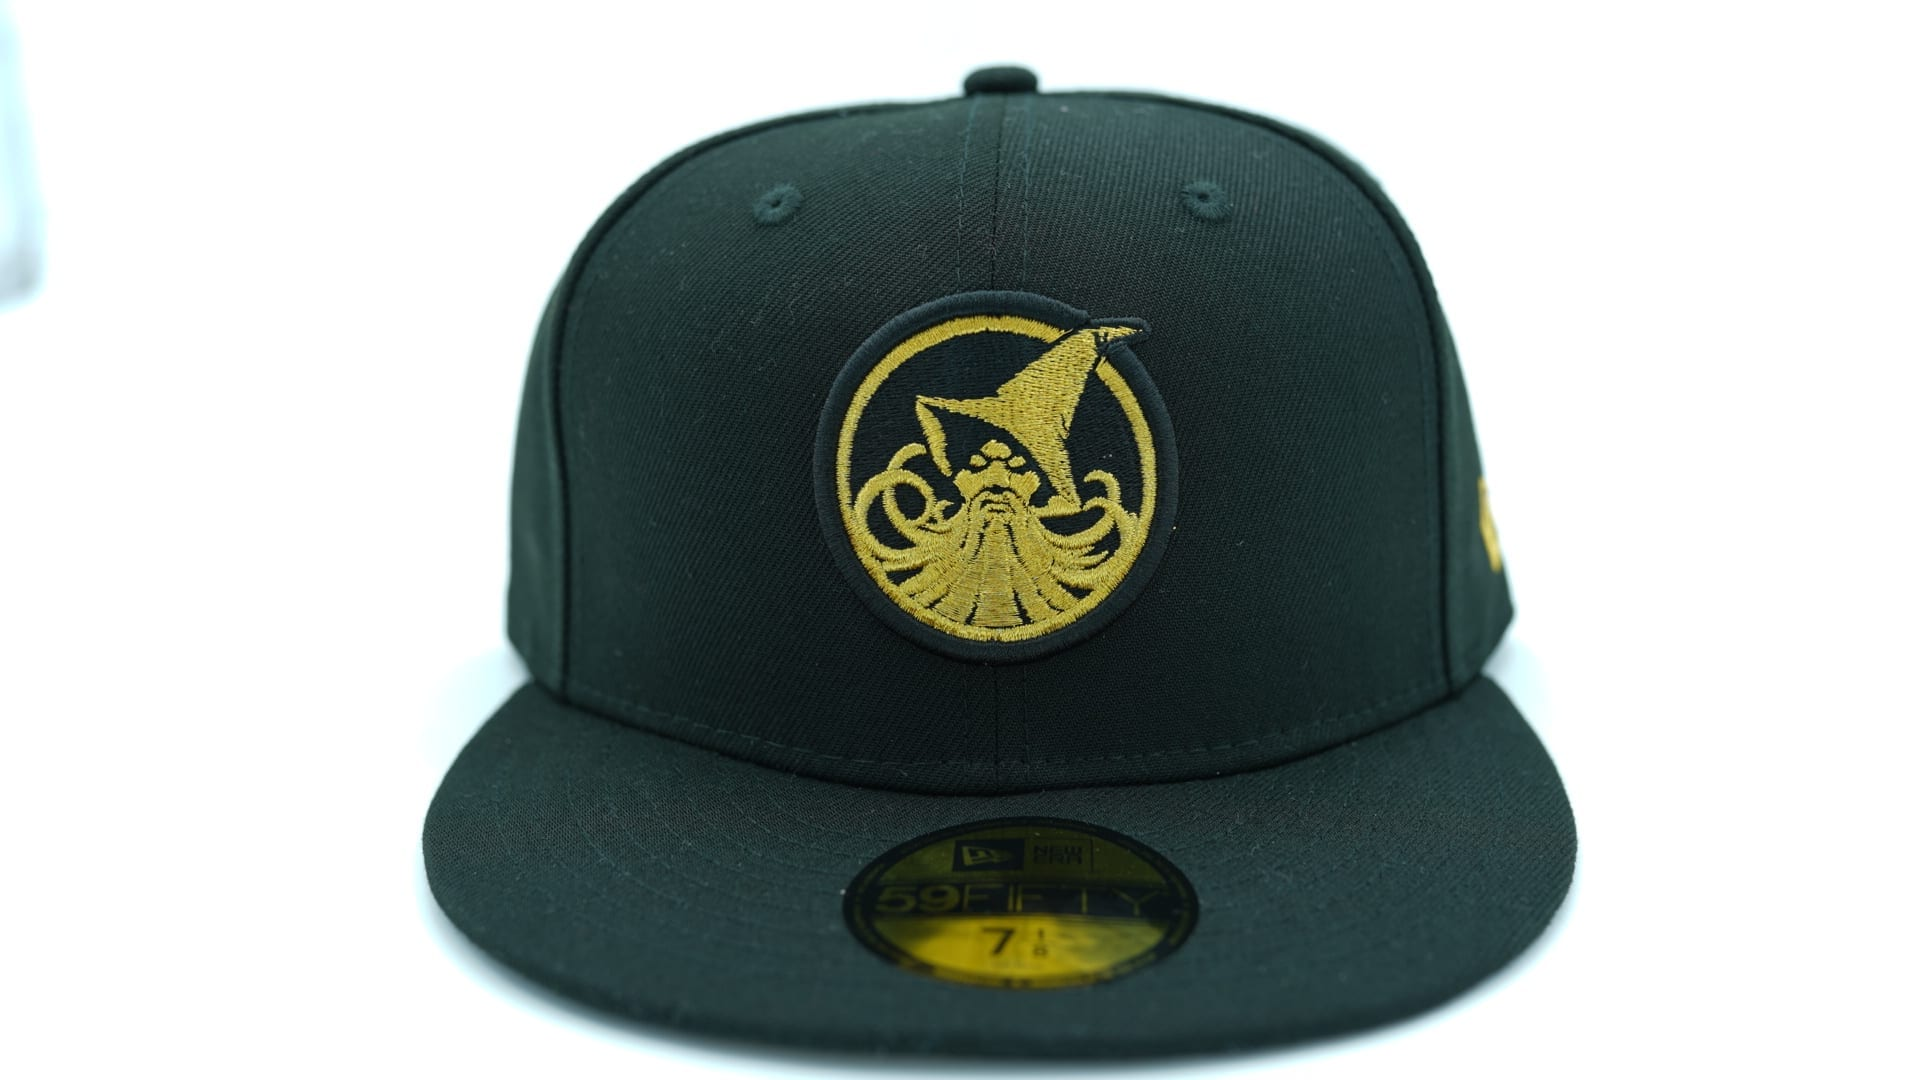 supra-new-era-59Fifty-fitted-baseball-cap-hat